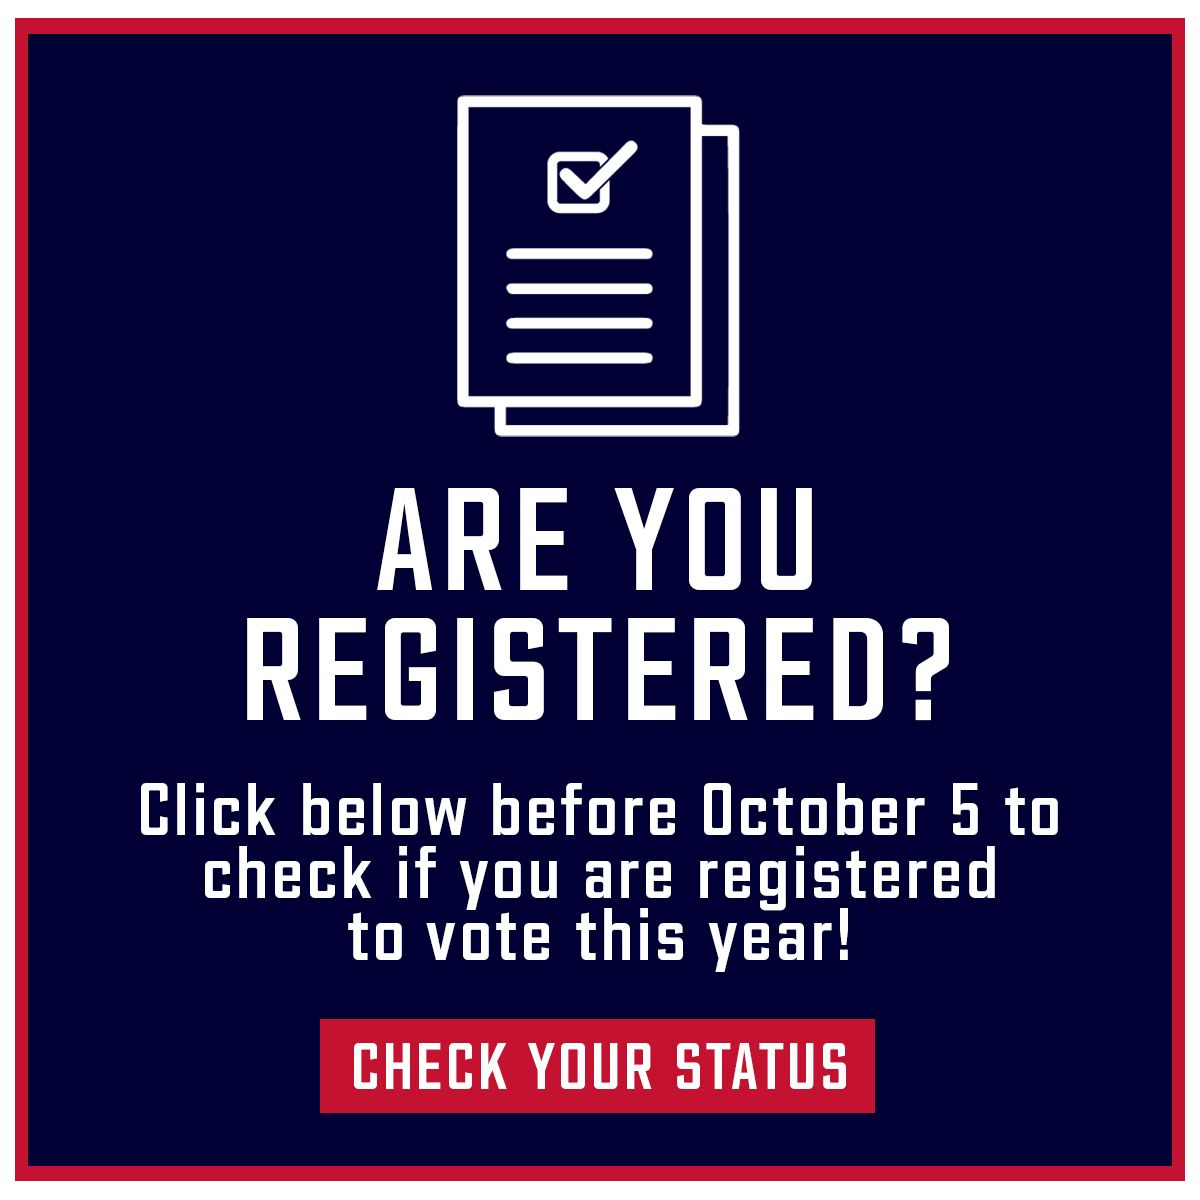 Register to vote. Do you know if you're registered? Click below before October 5 to check if you are registered to vote this year. Check your status.